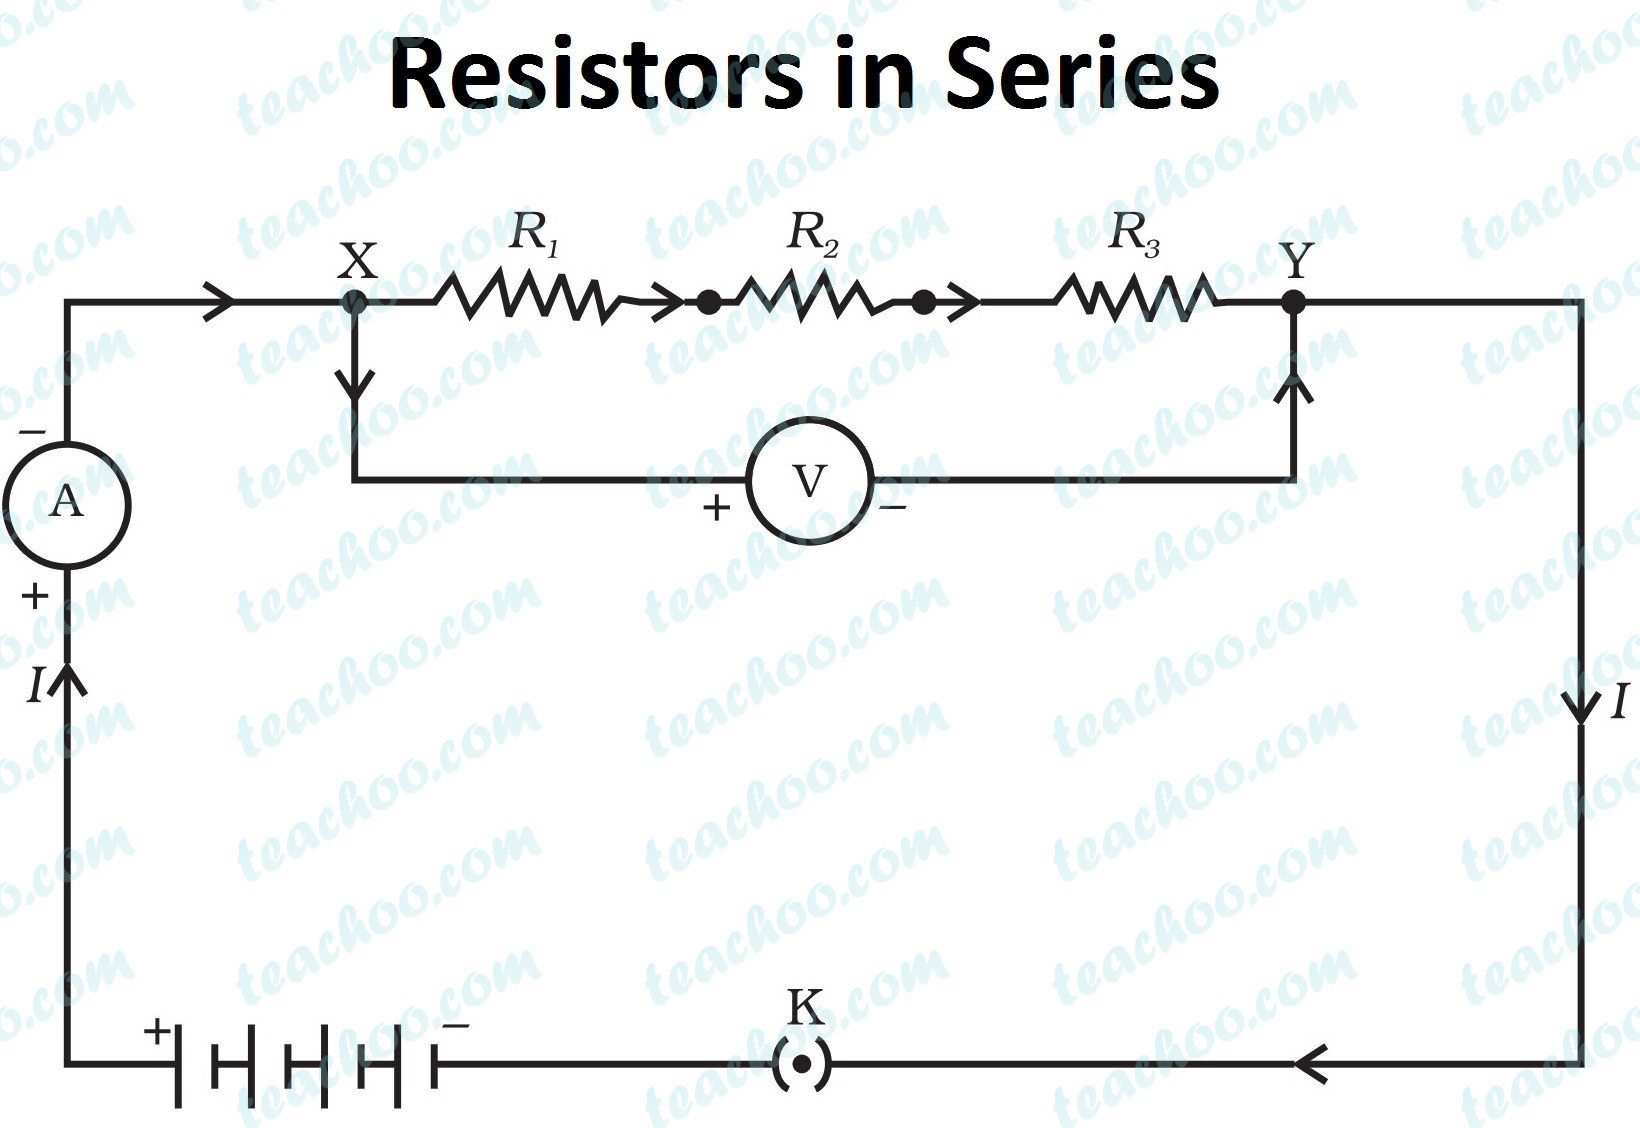 resistors-in-series---teachoo.jpg